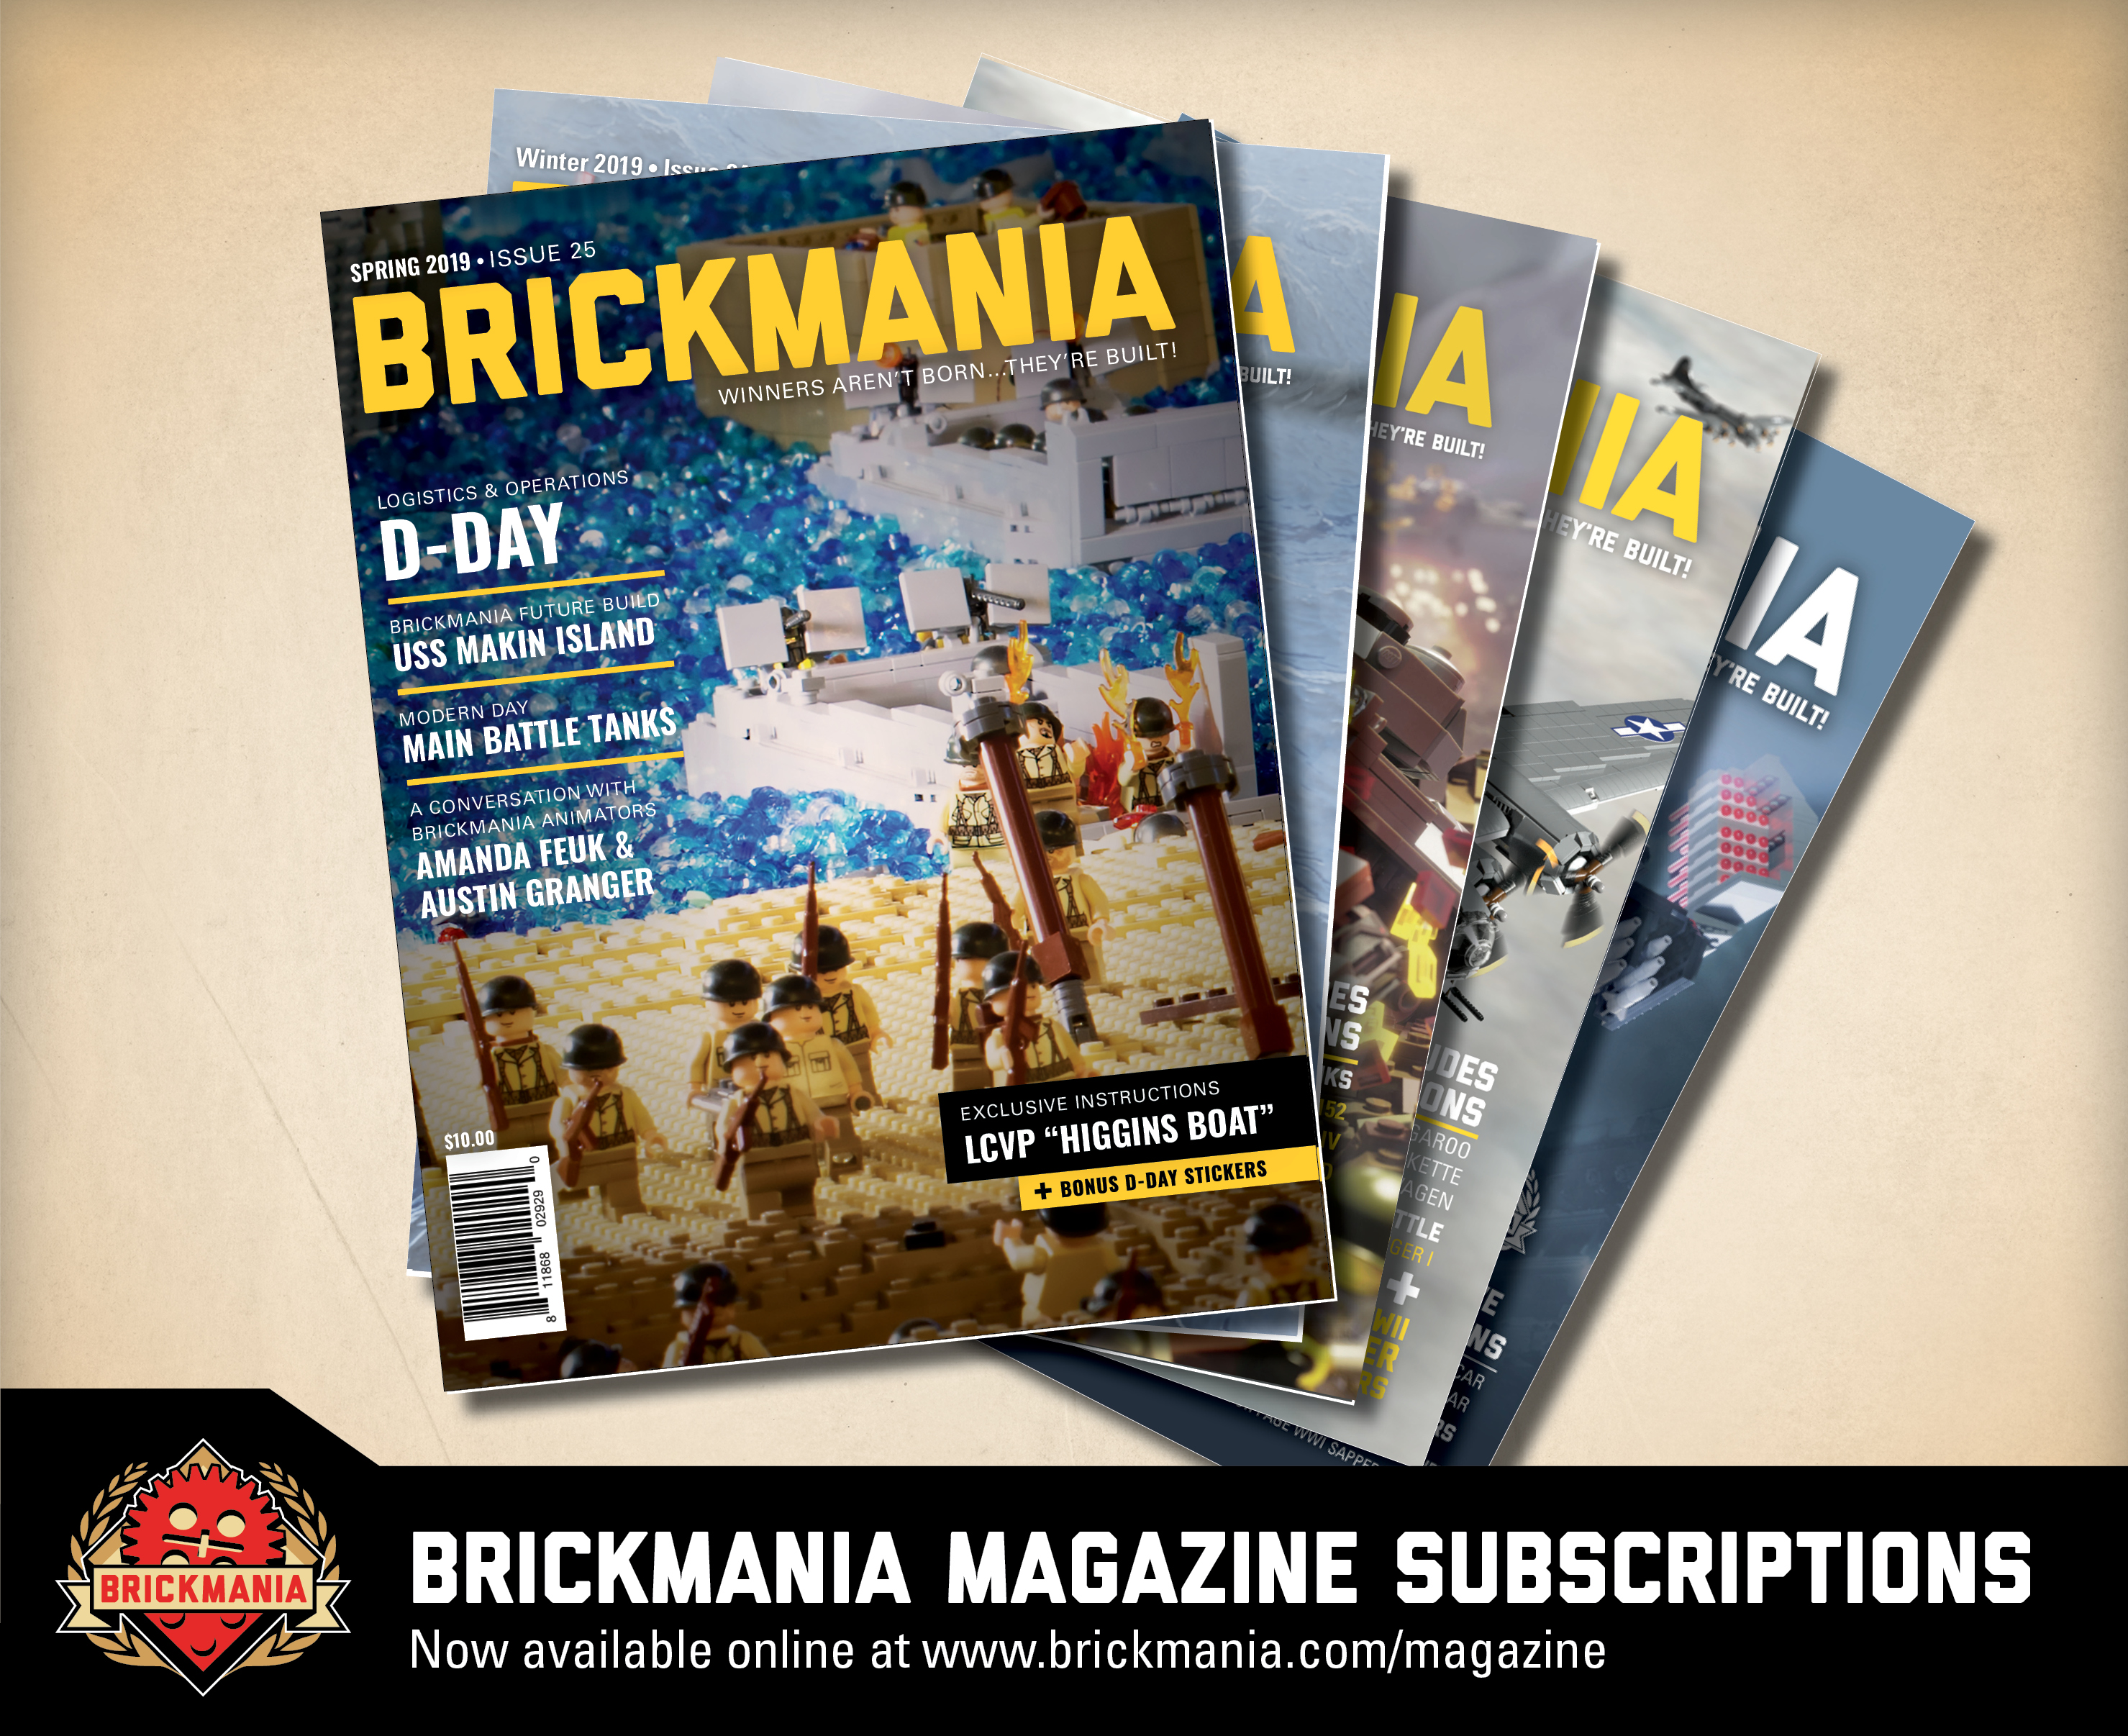 Brickmania Magazine 4-Issue Subscription